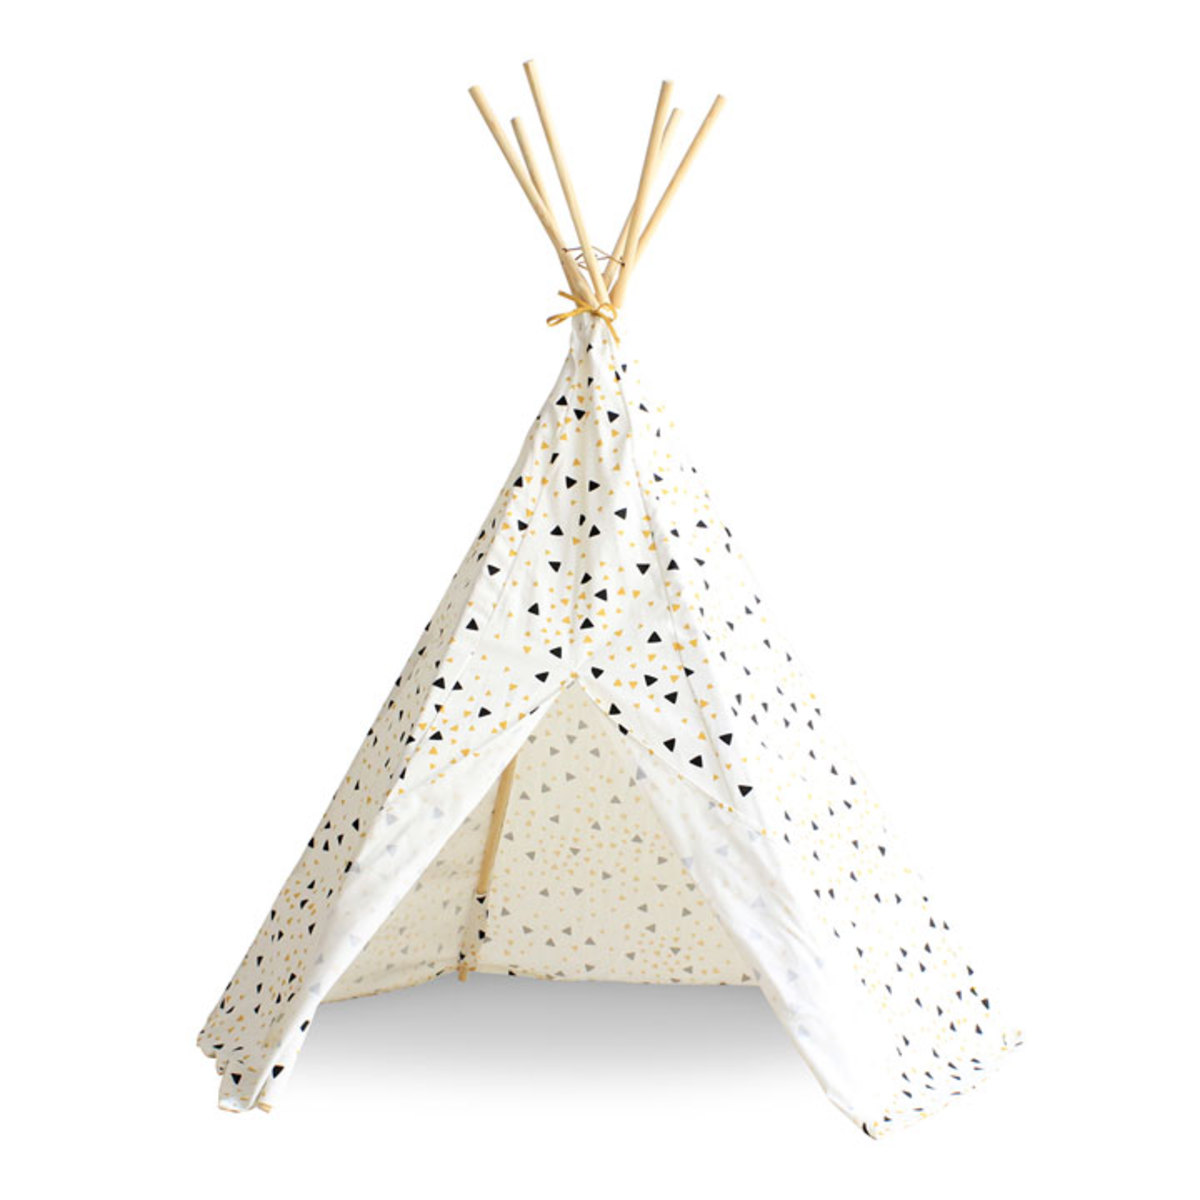 tipi arizona confettis miel noir 2000000055763 achat vente tapis d 39 veil sur. Black Bedroom Furniture Sets. Home Design Ideas